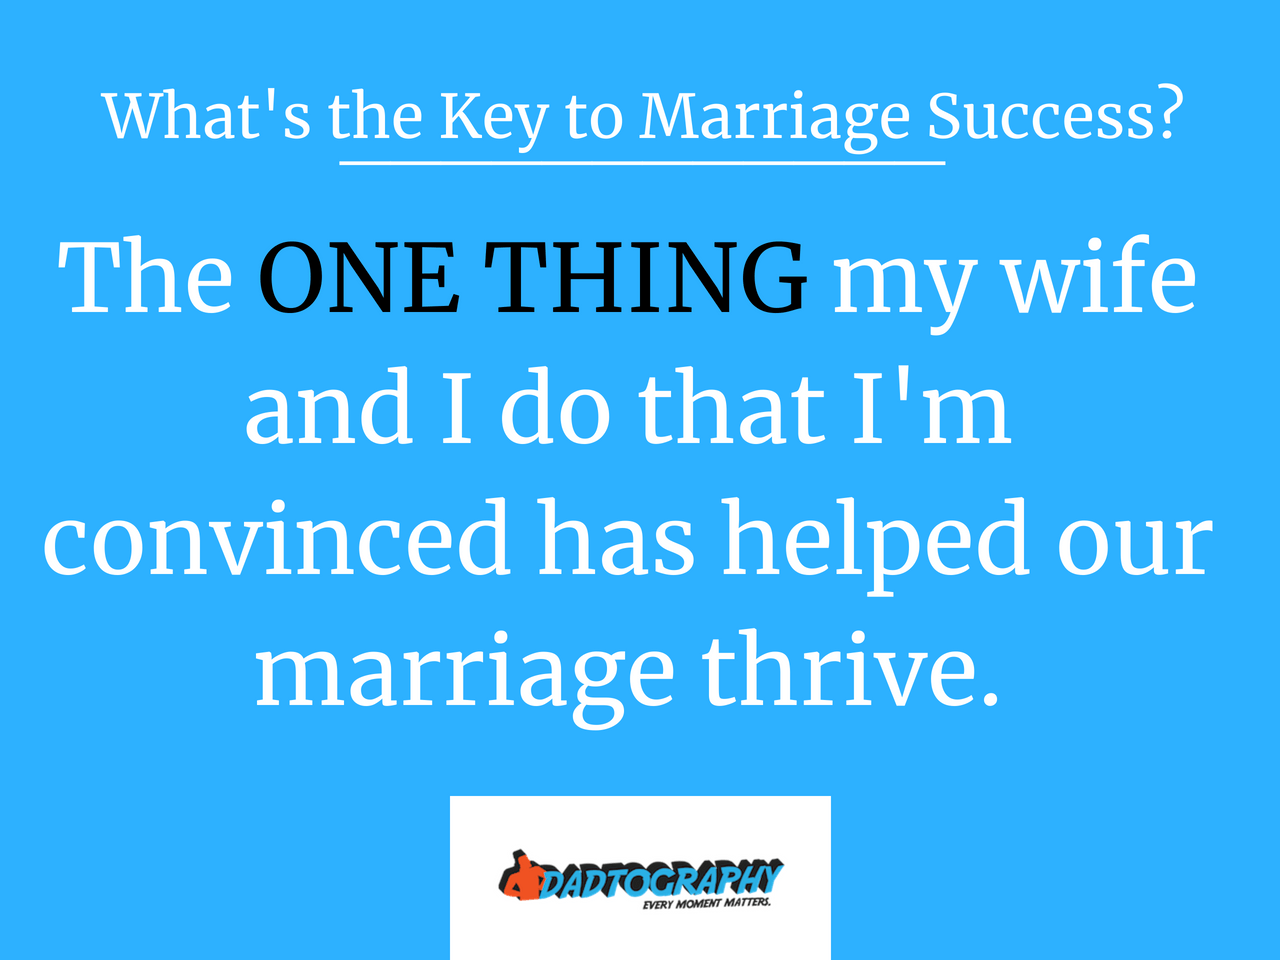 What's the key to marriage success? I think this one thing my wife and I do has helped our marriage thrive.